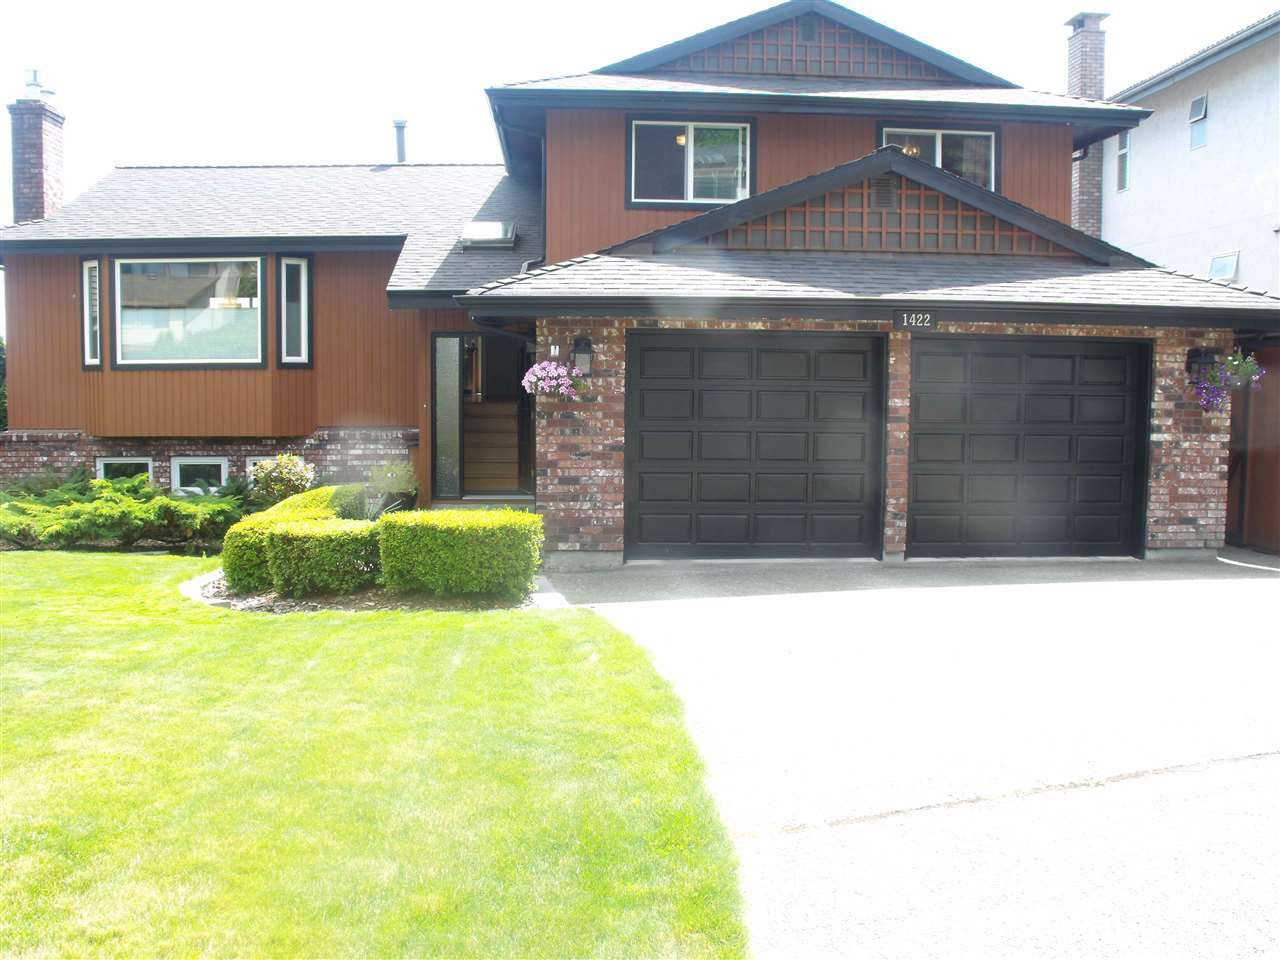 Main Photo: 1422 LANSDOWNE Drive in Coquitlam: Upper Eagle Ridge House for sale : MLS®# R2096768